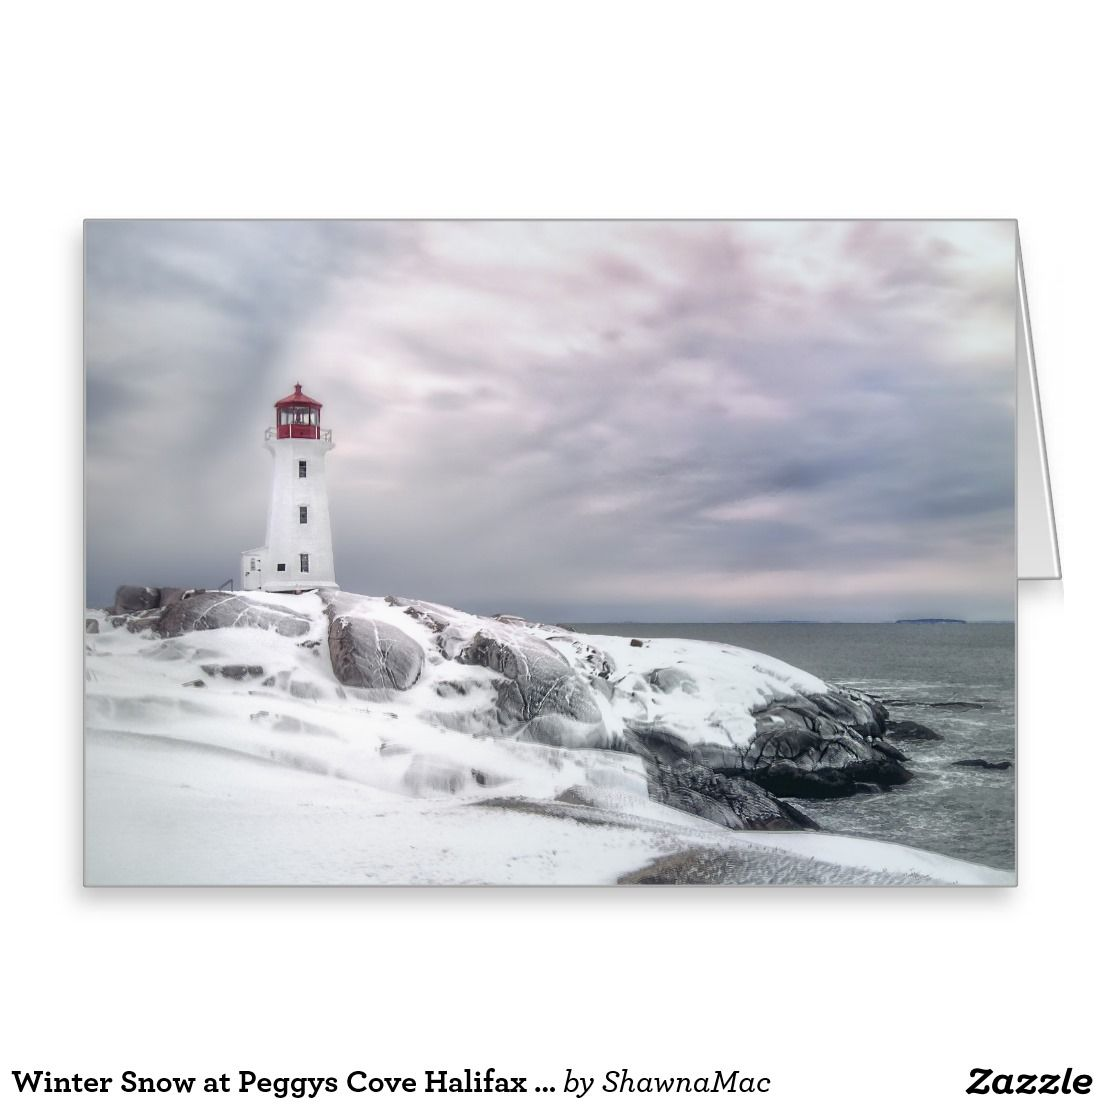 Winter snow at peggys cove halifax nova scotia greeting card winter snow at peggys cove lighthouse halifax nova scotia canada christmas art greeting card kristyandbryce Choice Image